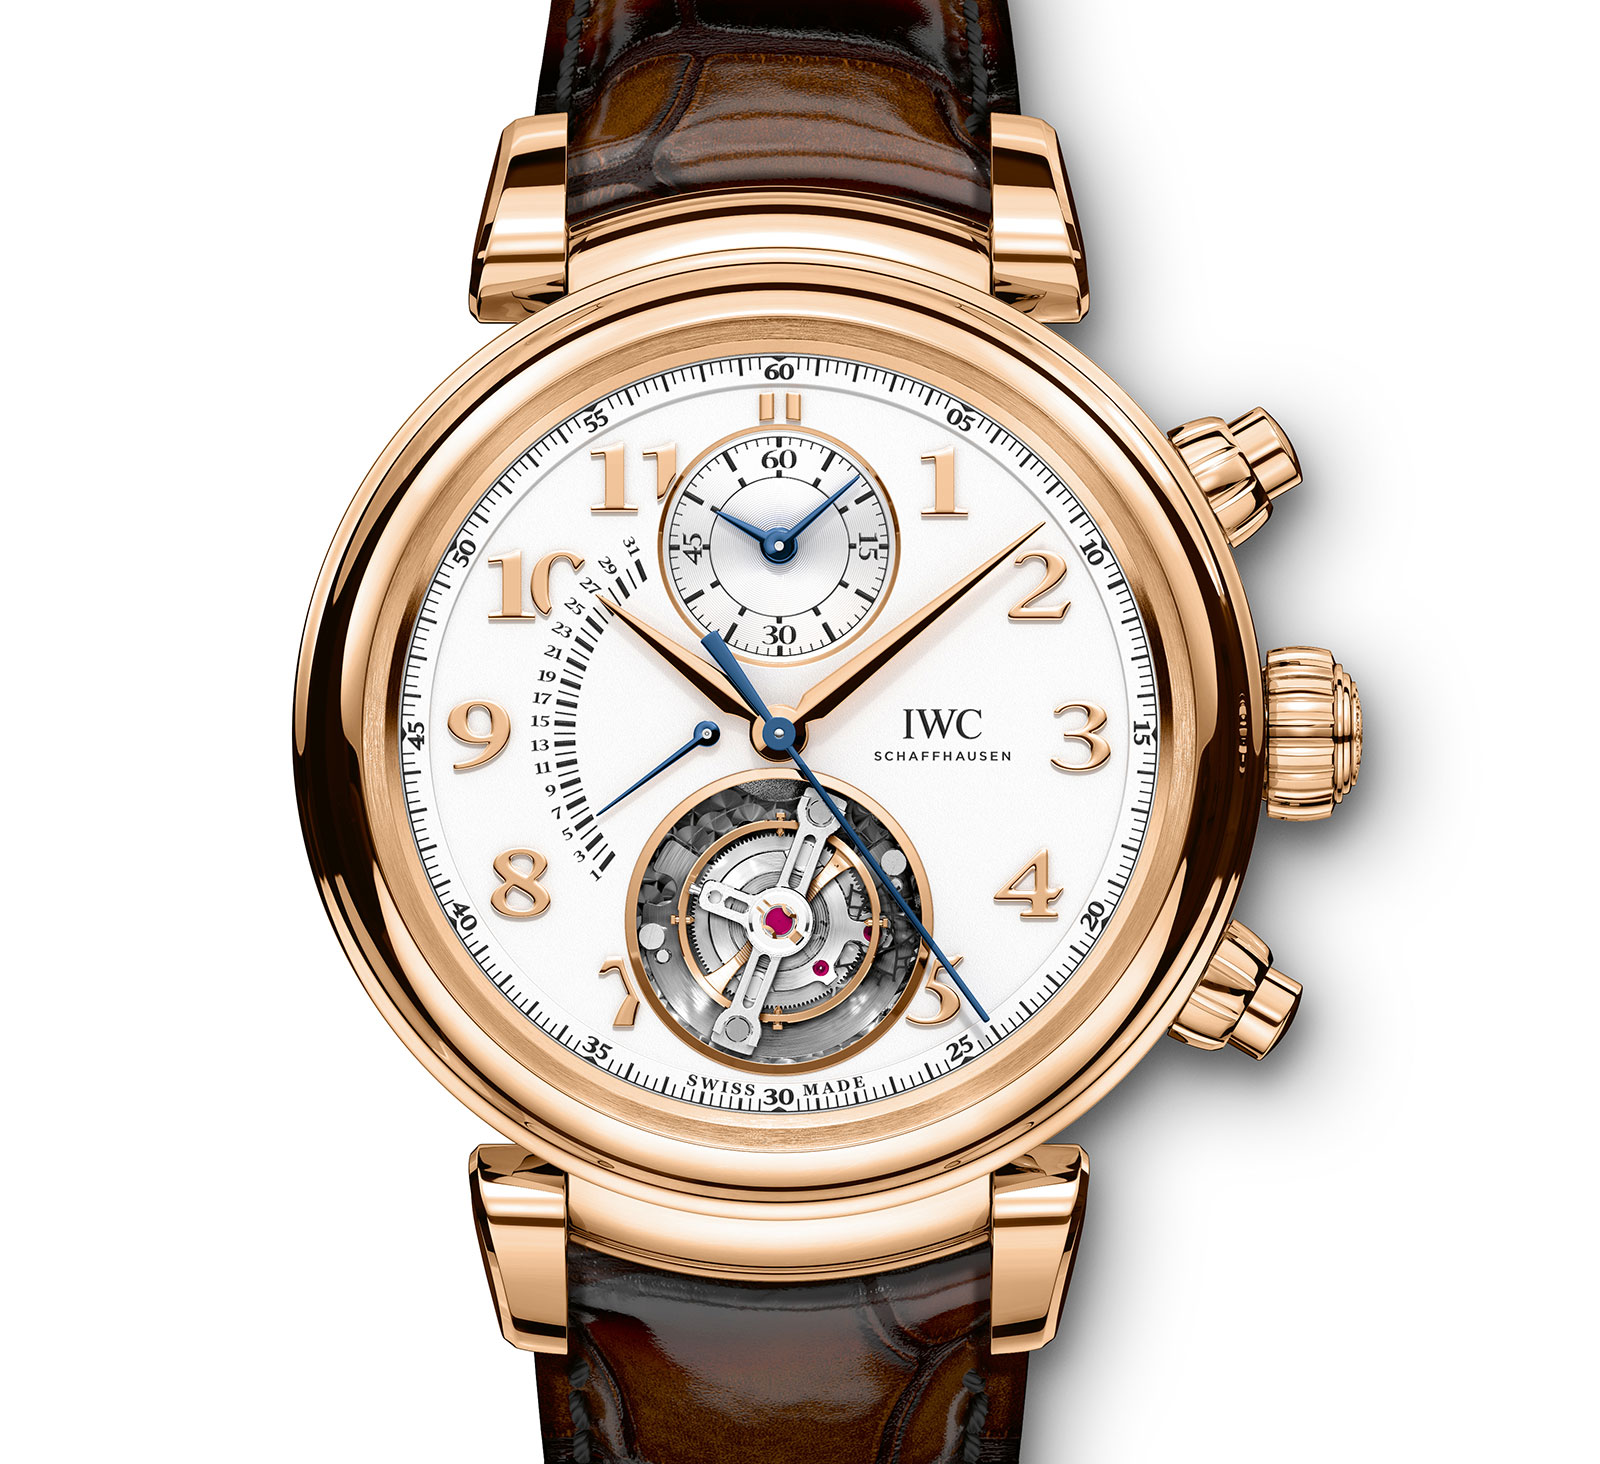 IWC Da Vinci Tourbillon Retrograde Chronograph 4